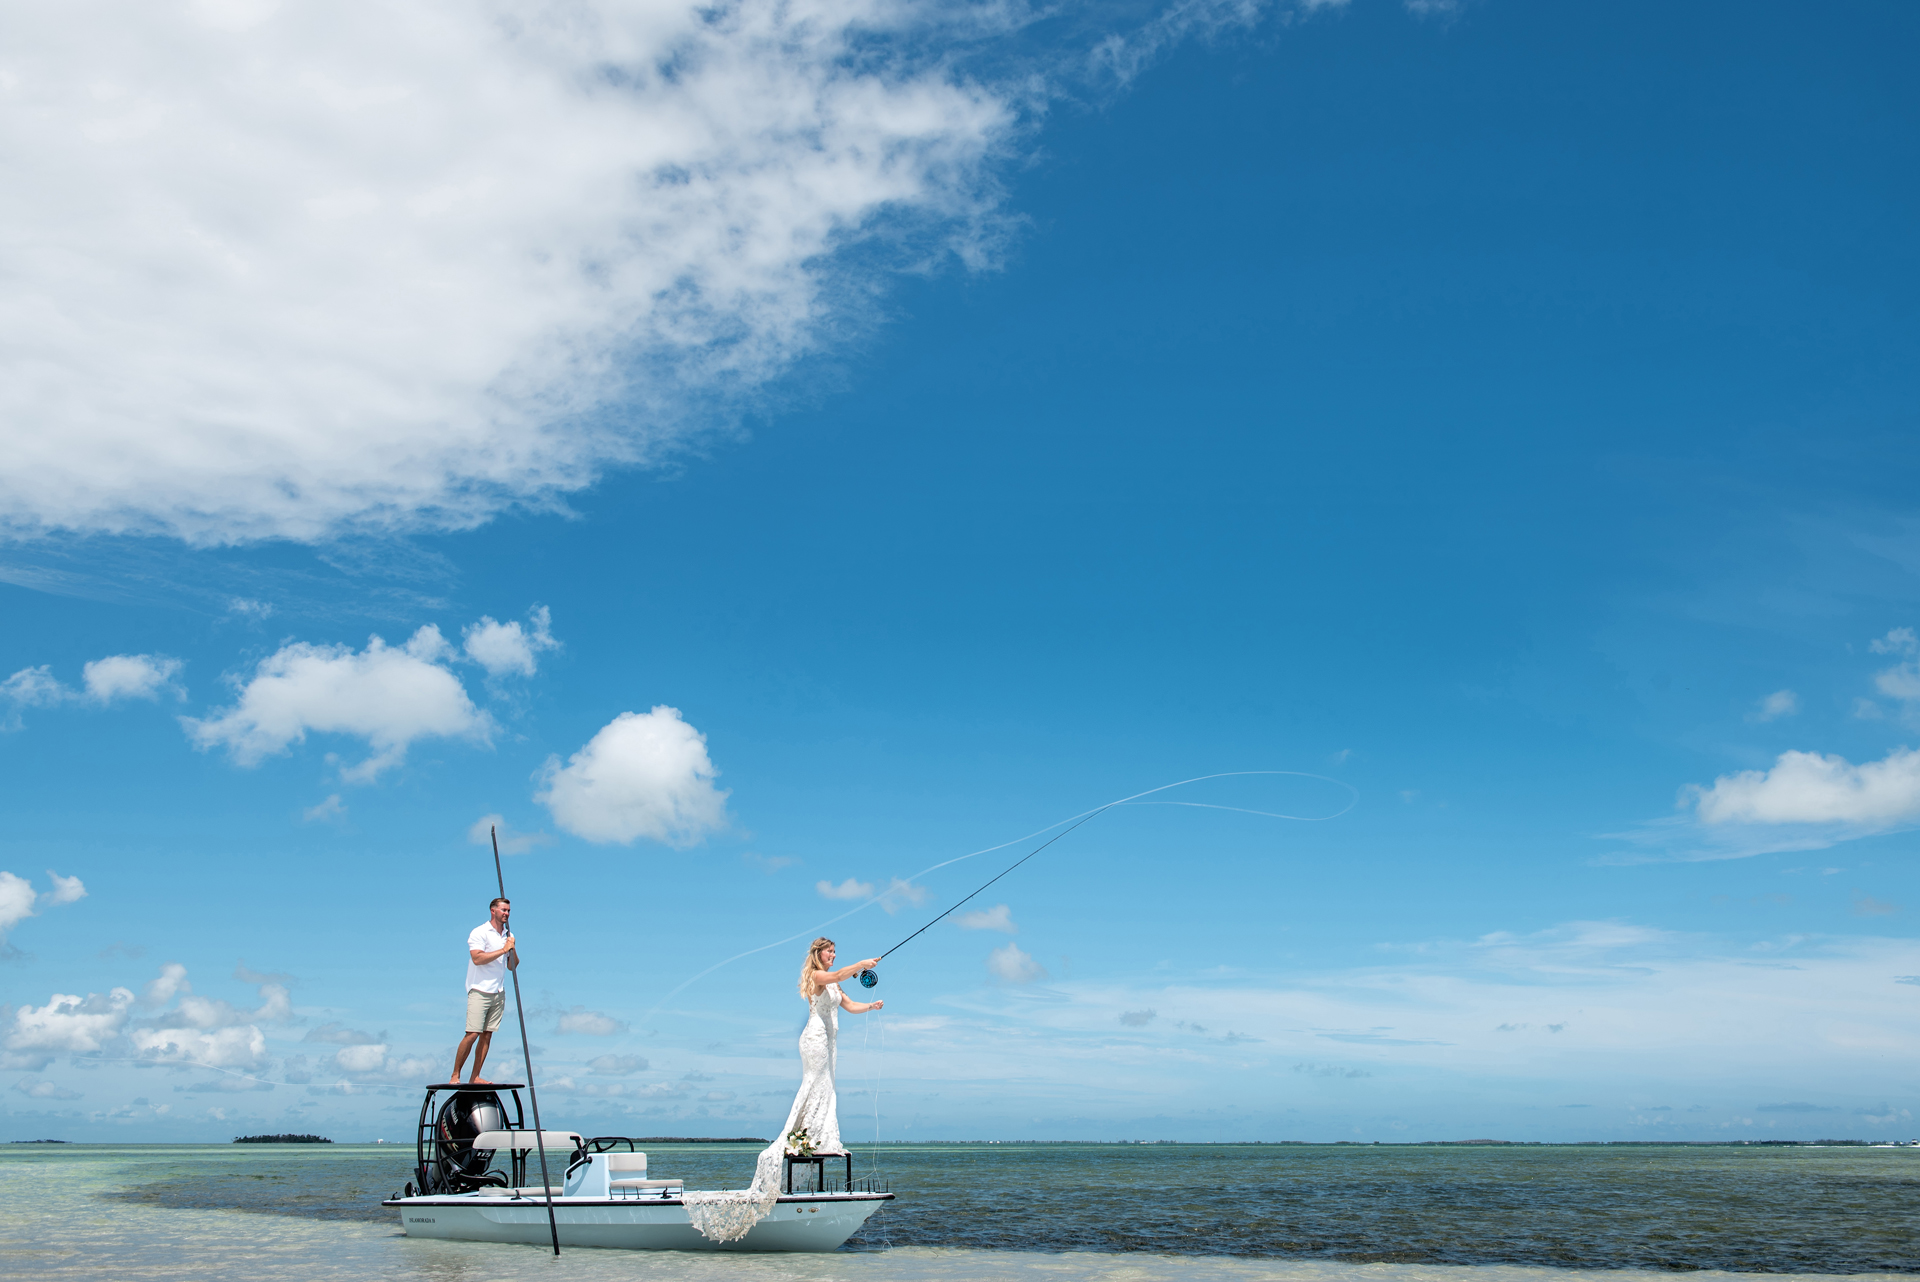 Key West Elopement Pictures from the Florida Keys | fly fishing is so important to this couple's story